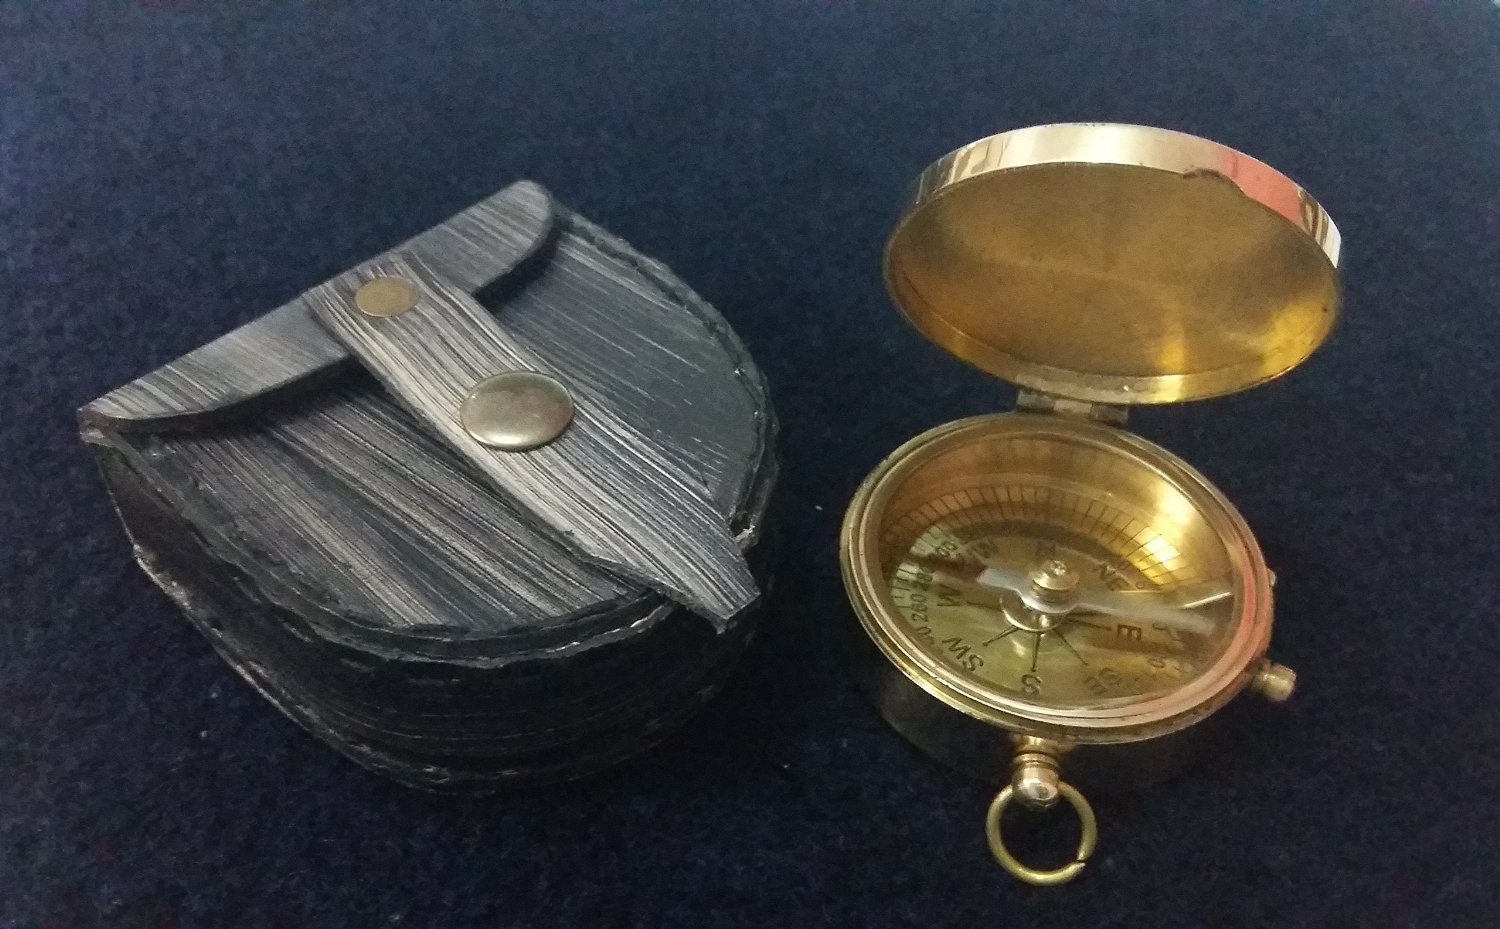 NauticalMart Brass Compass with Leather Case NAUTICALMART INC